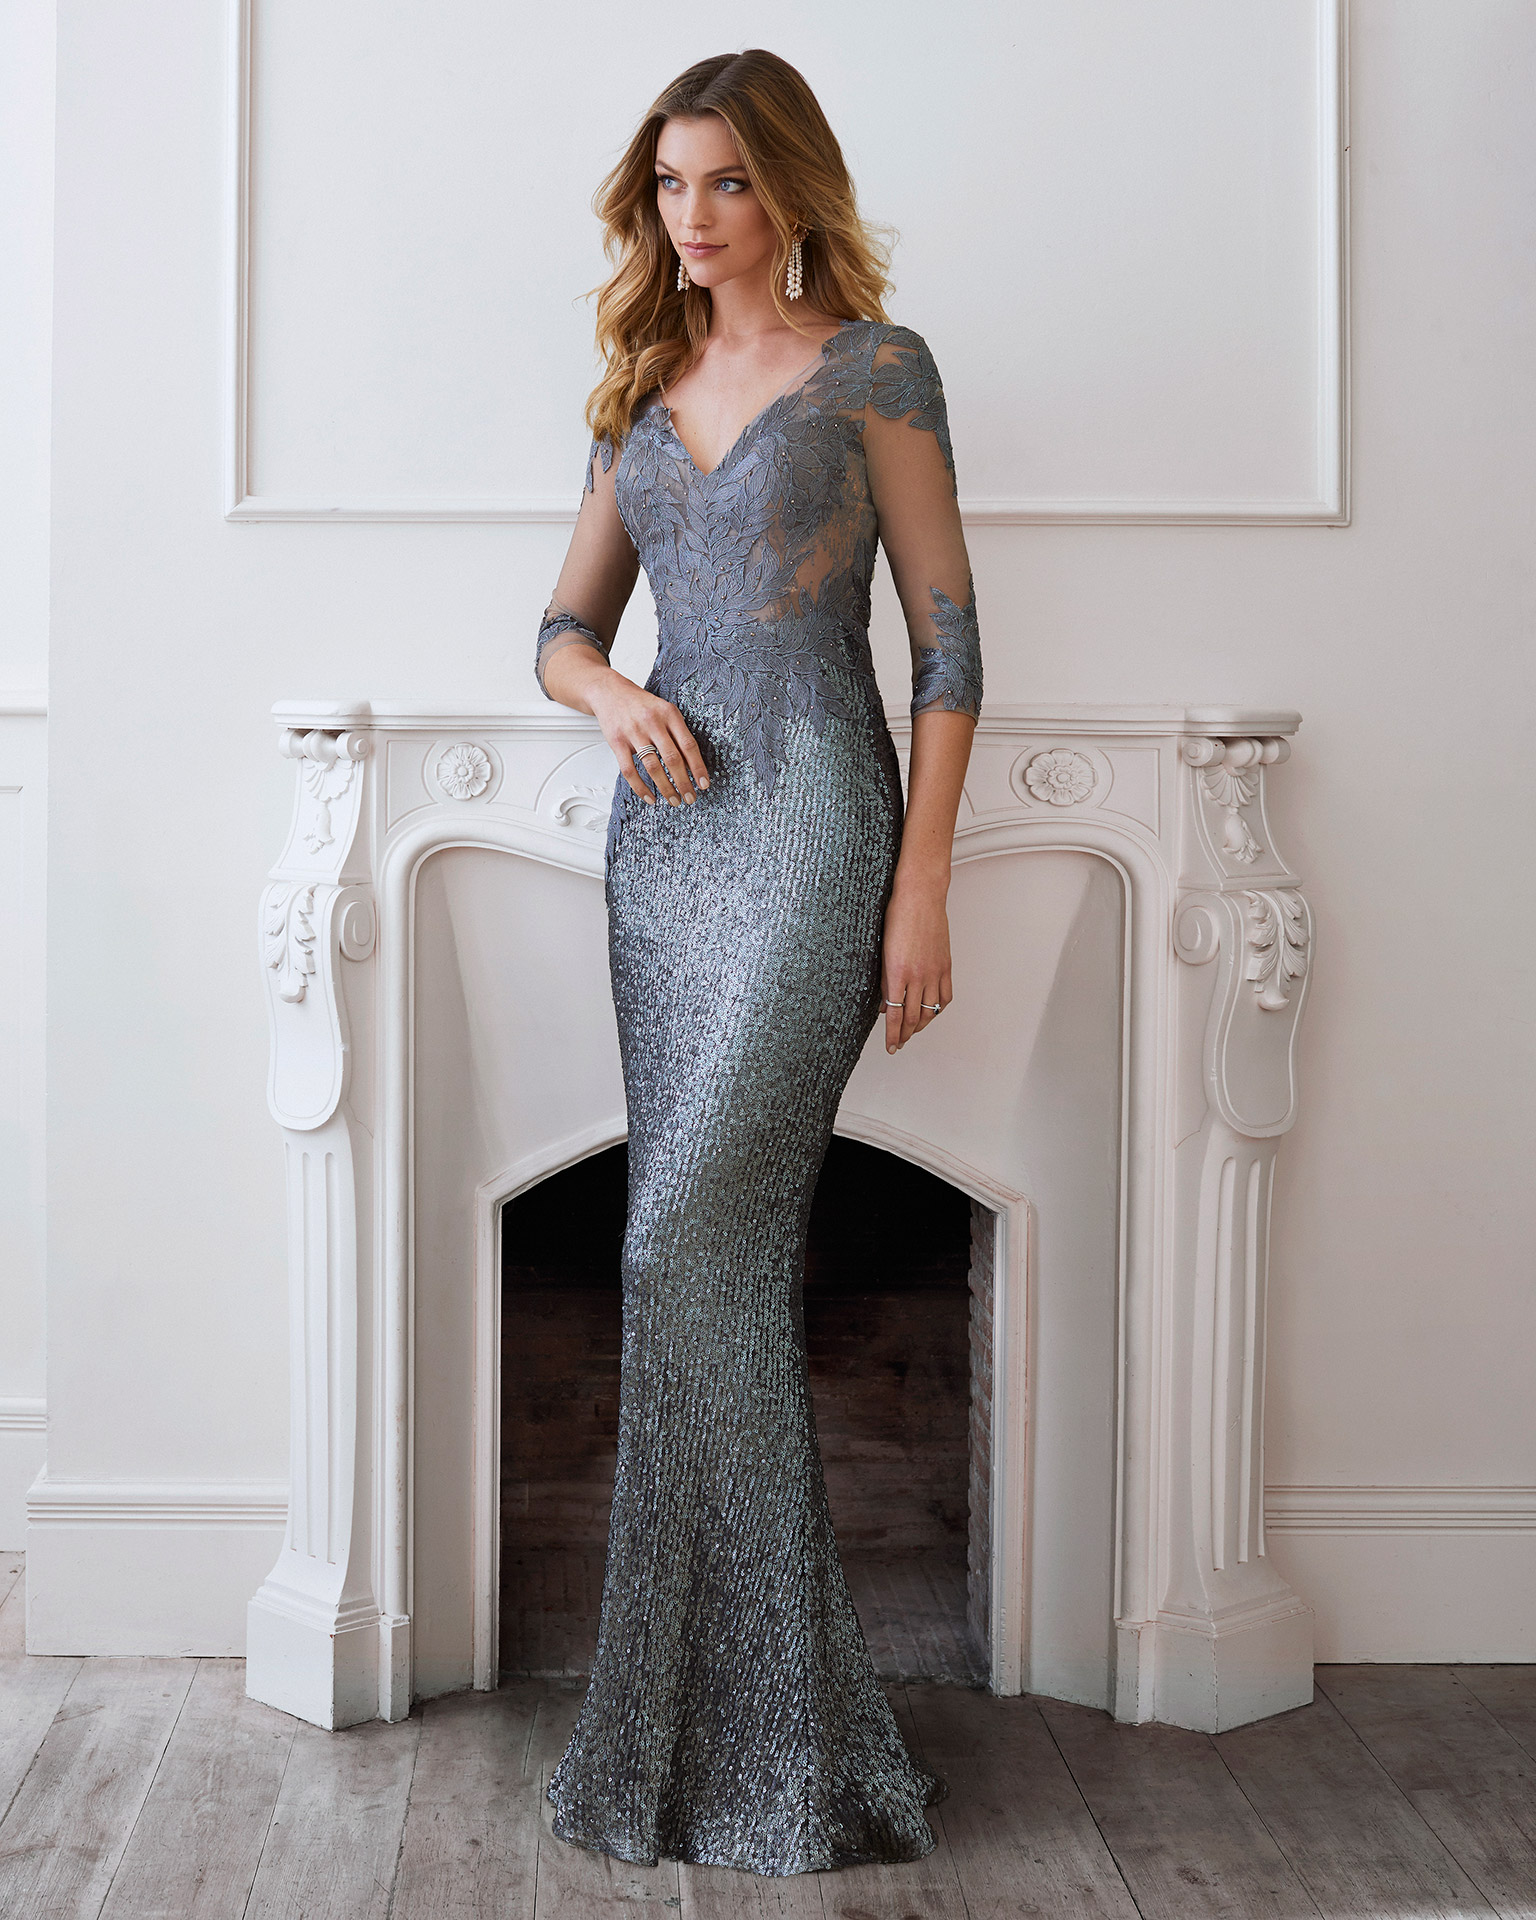 Cocktail dress in embroidered tulle with sequins and bodice in tulle and beaded lace. V-neckline and closed back with opening in centre. Three-quarter sleeves with lace and beading. 2021 MARFIL BARCELONA Collection.